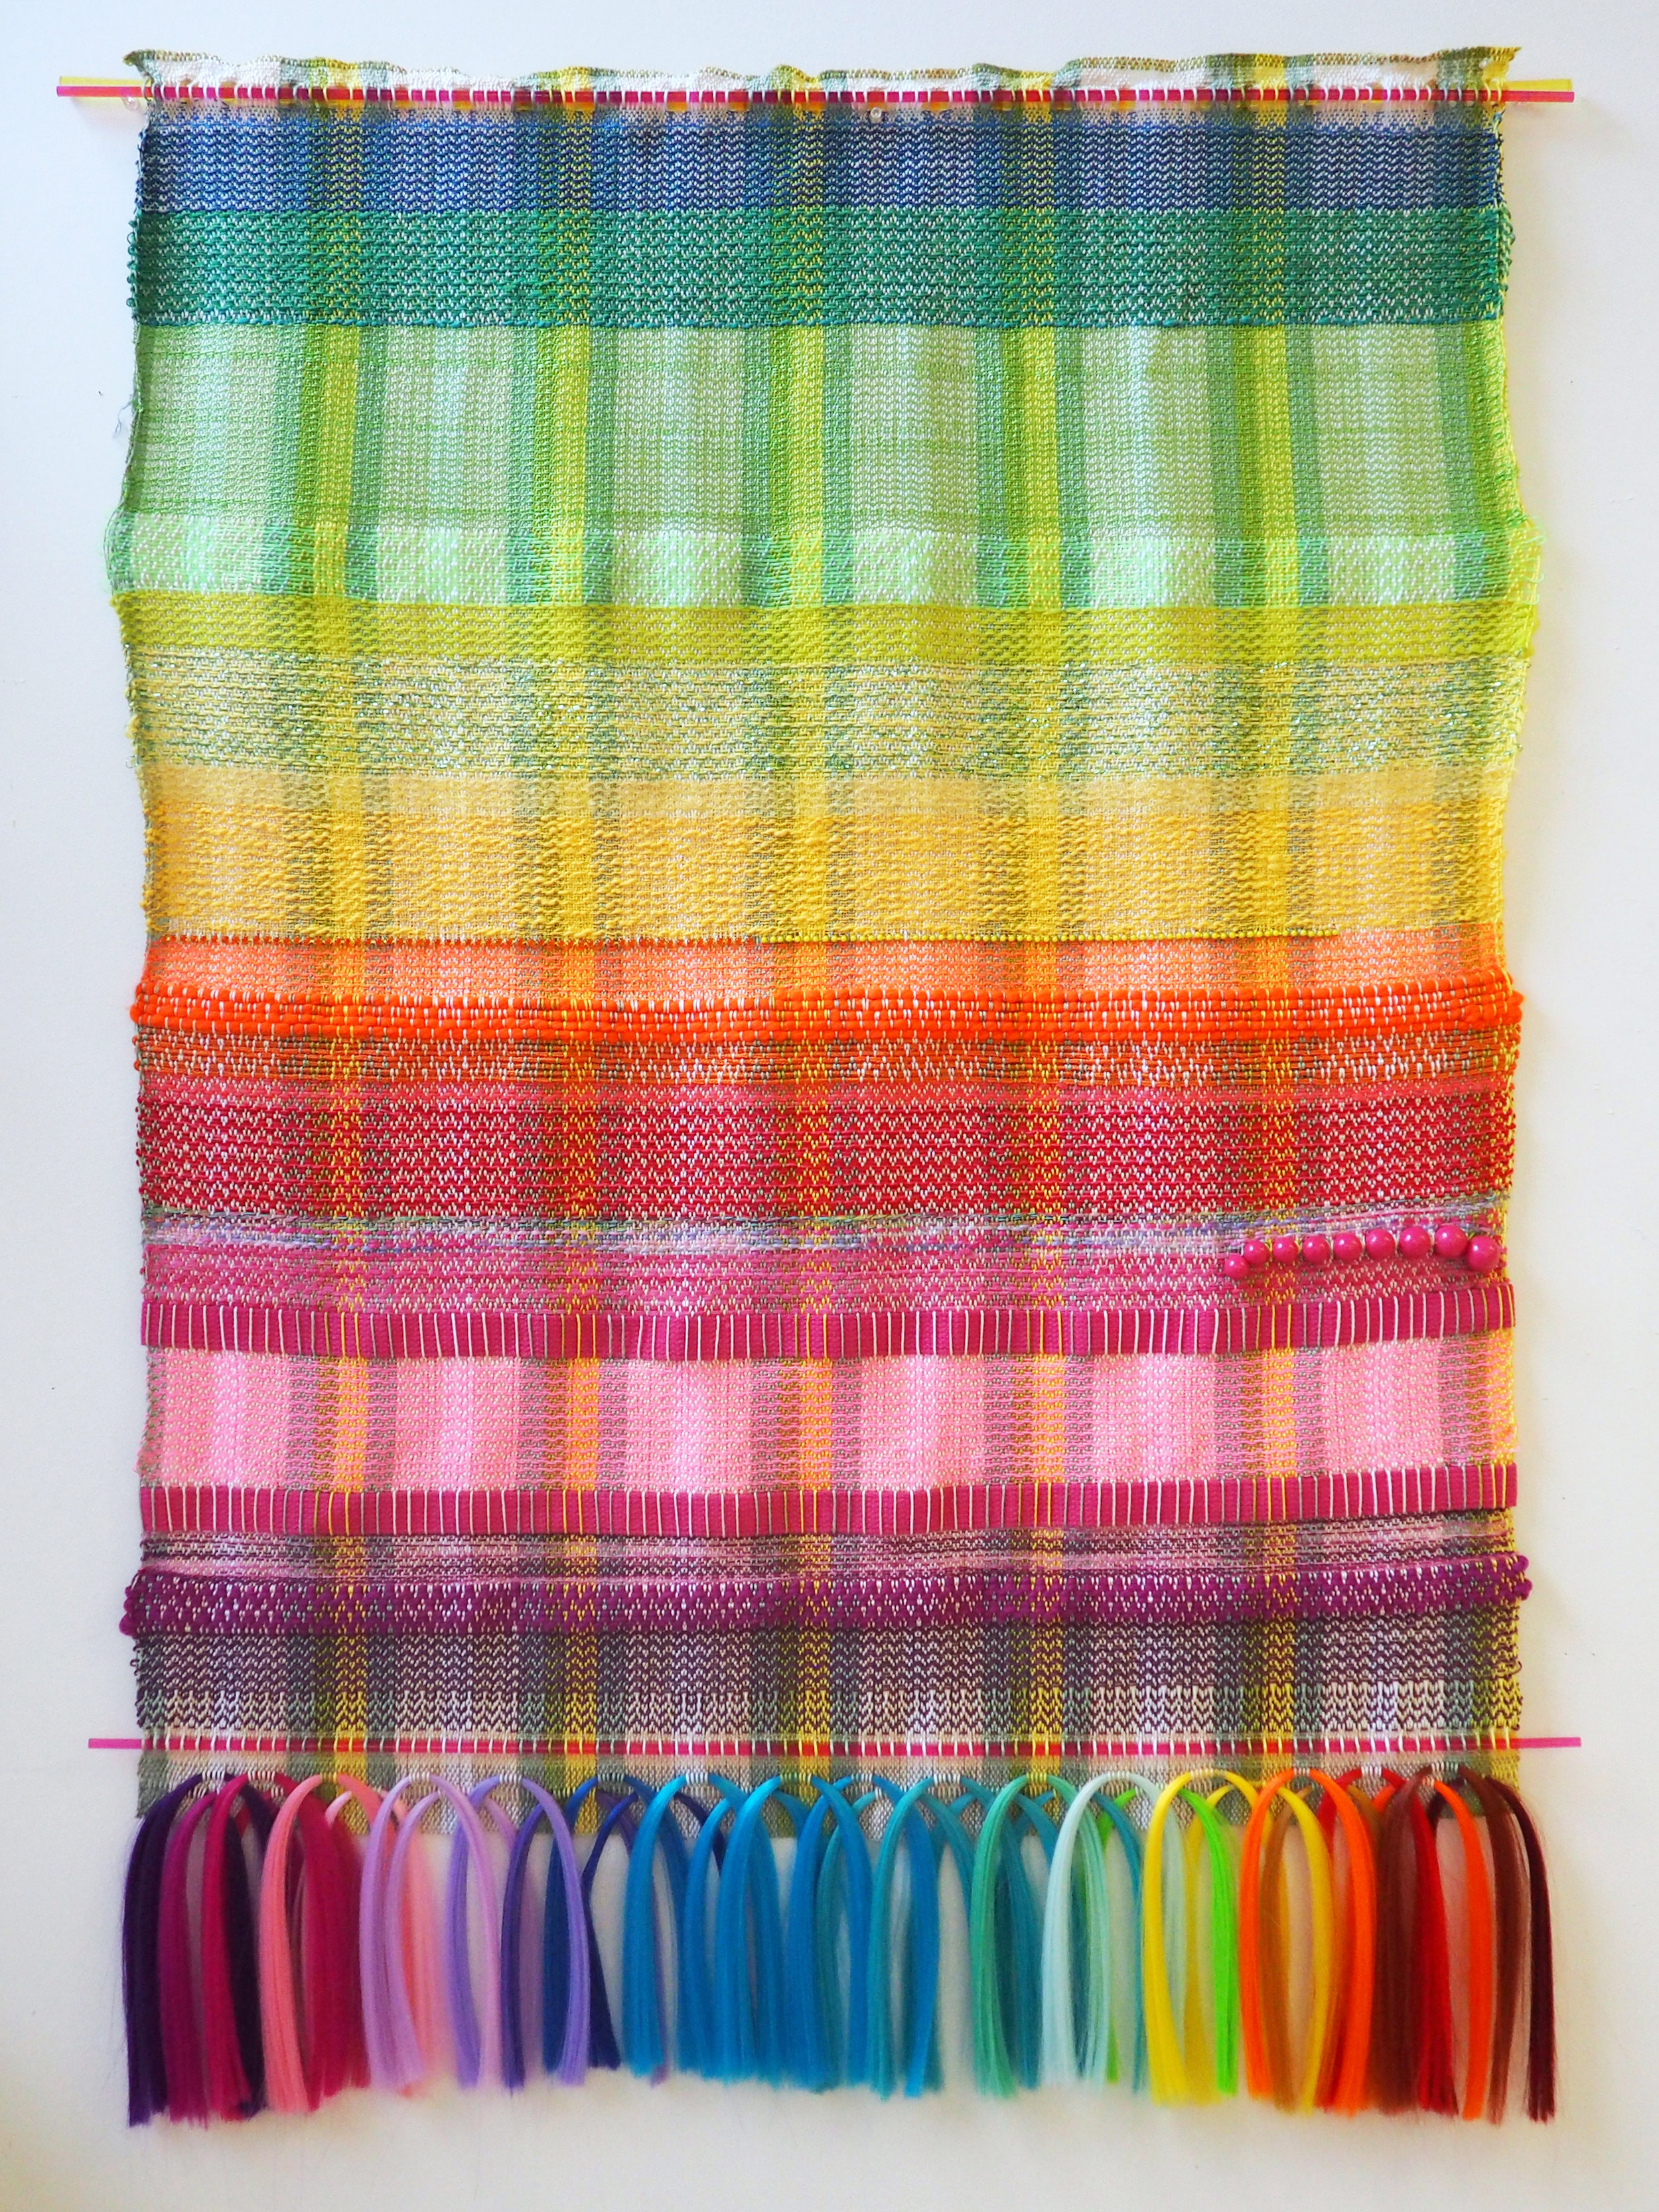 Handwoven tapestry- Mixed yarns, plastic, glass, synthetic hair, and beads. 47 x 36 in 2017